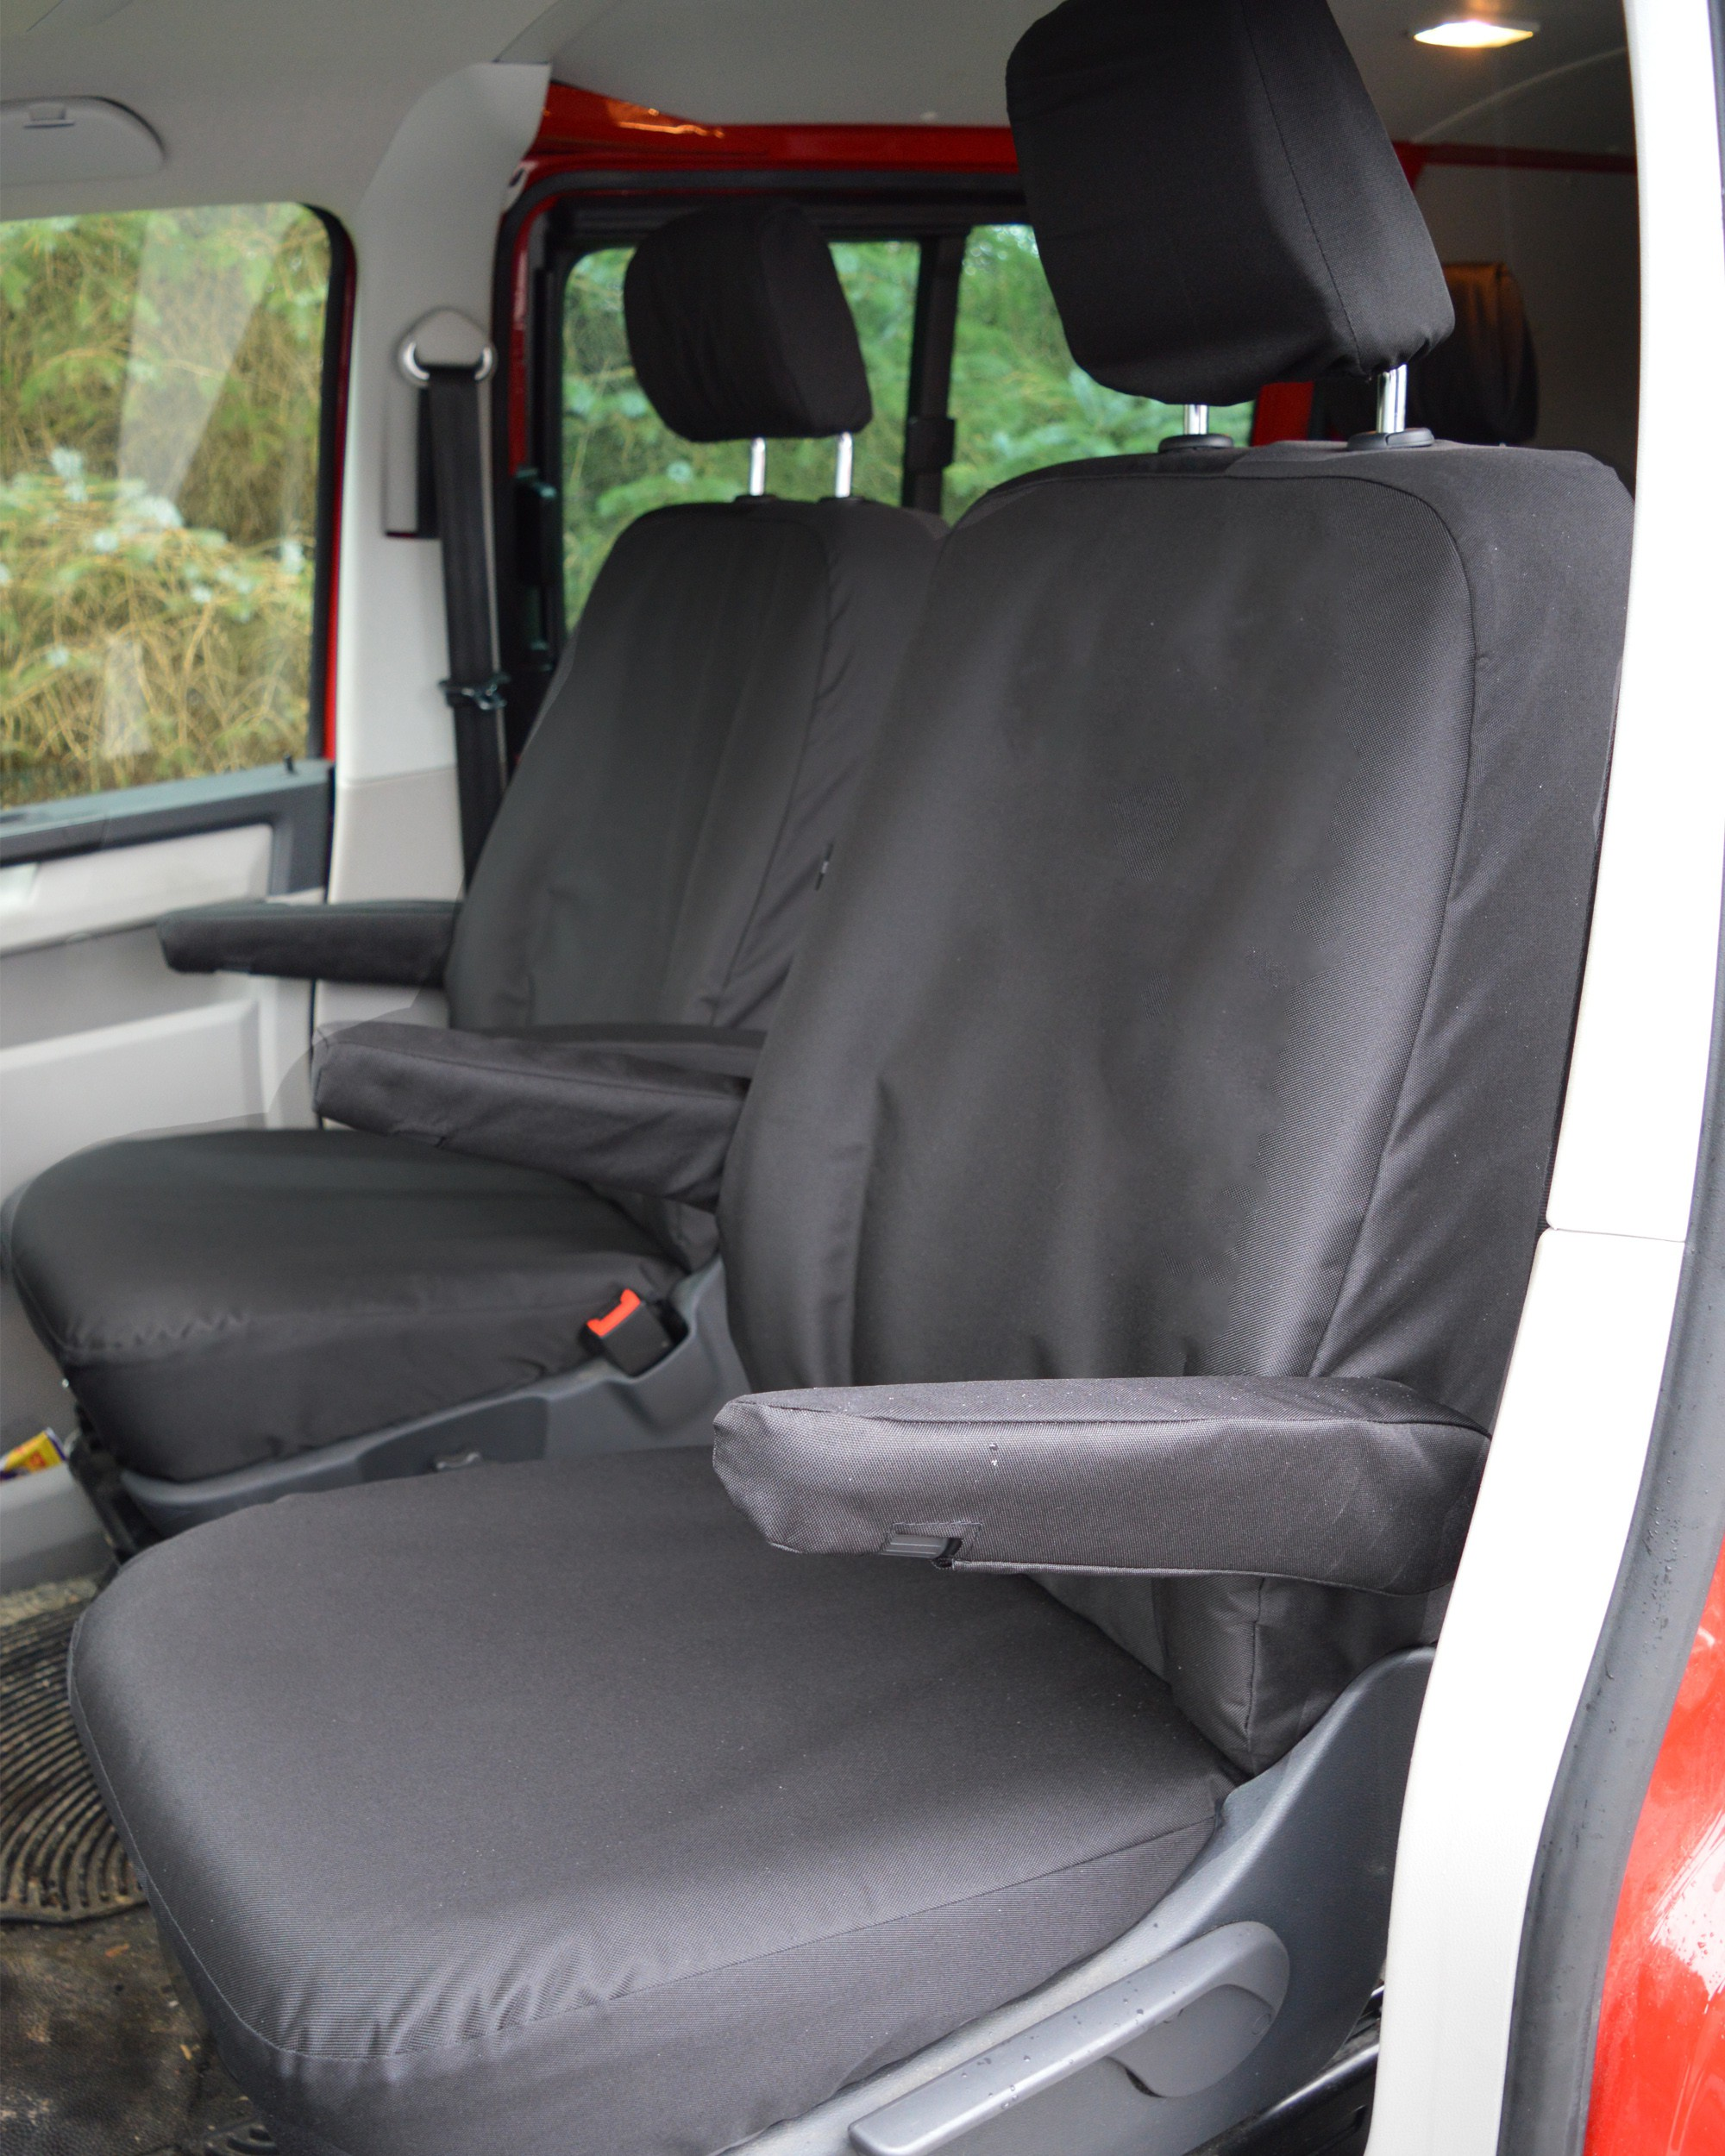 SINGLE HEAVY DUTY BLACK SEAT COVER PROTECTOR FOR VOLKSWAGEN VW TRANSPORTER T5